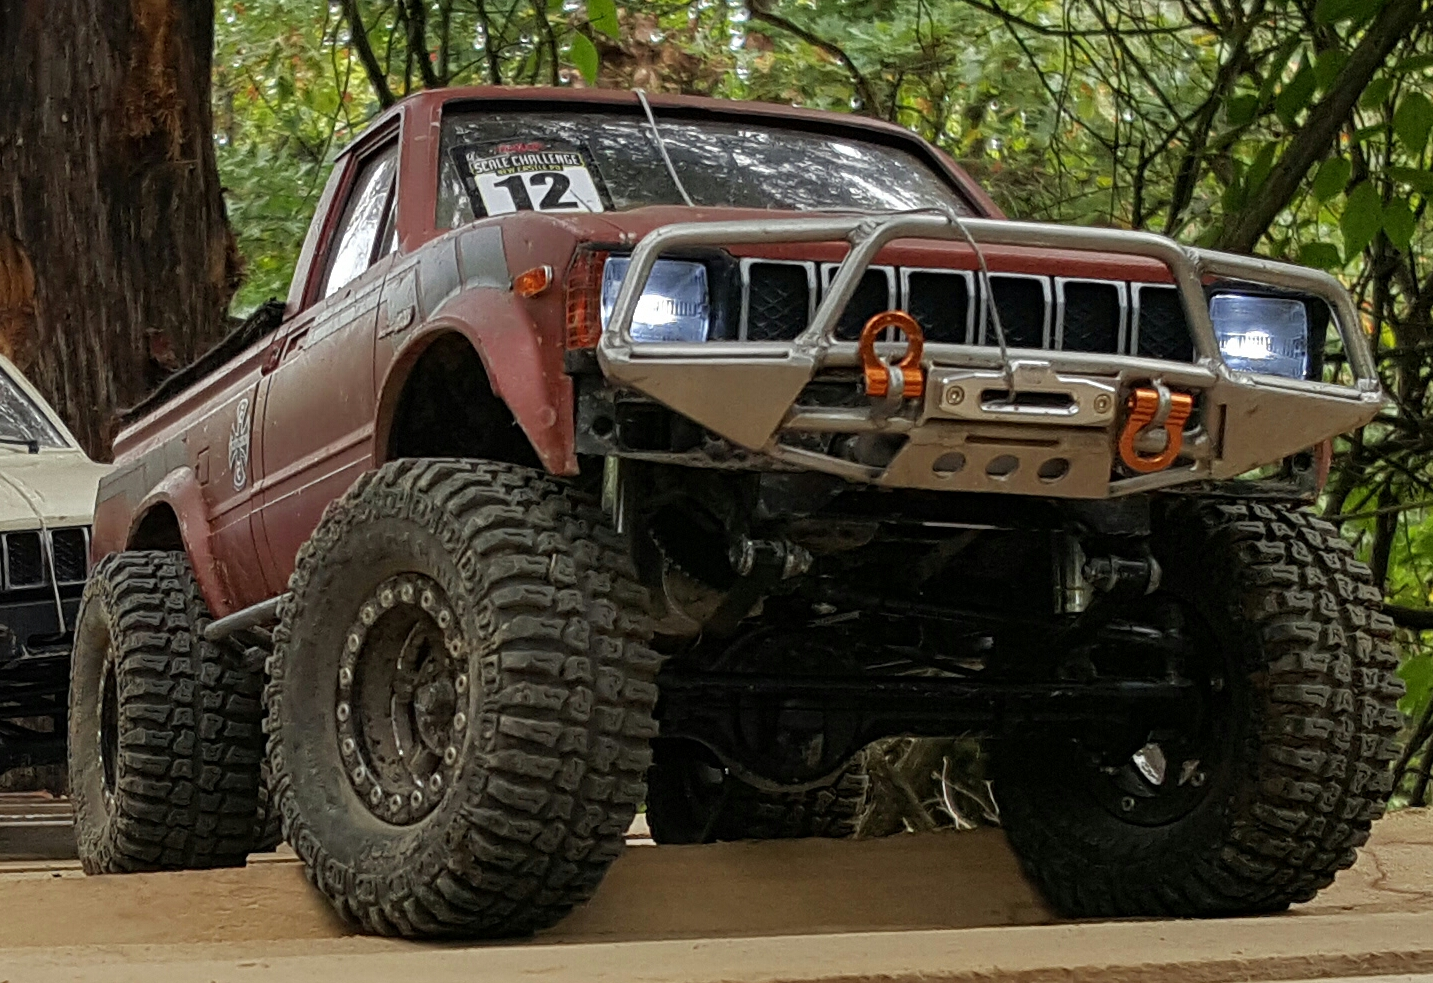 RC4WD Trail Finder 2 Toyota Hilux by Brian Pratt [READERS' RIDE]